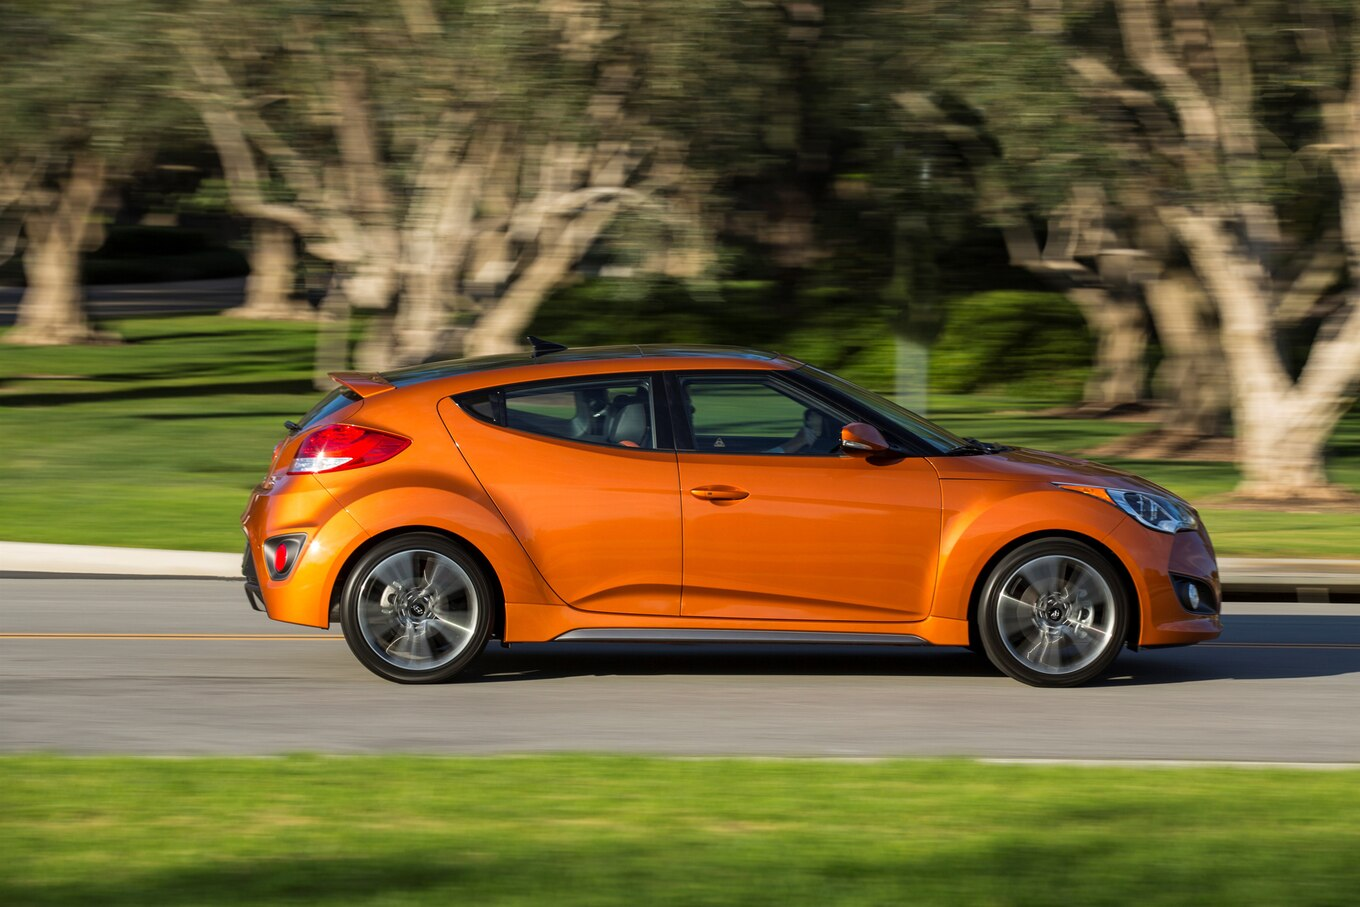 Le Meilleur 2016 Hyundai Veloster First Look Motor Trend Ce Mois Ci